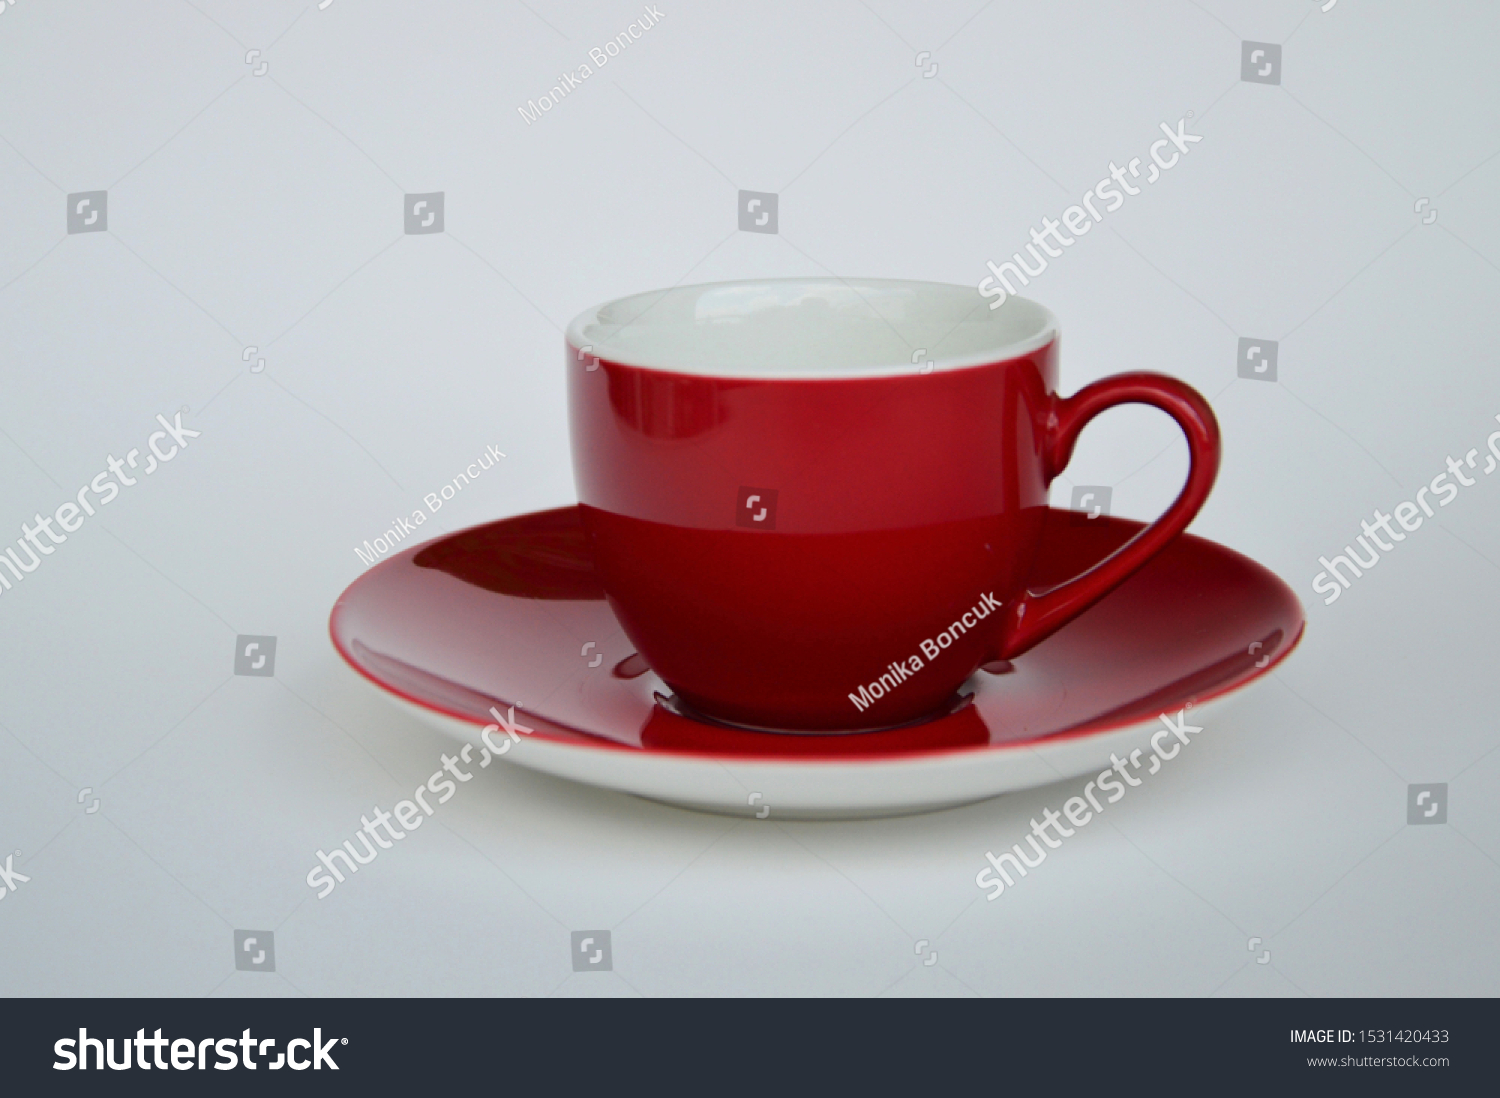 stock-photo-a-red-cup-for-a-beautiful-ho